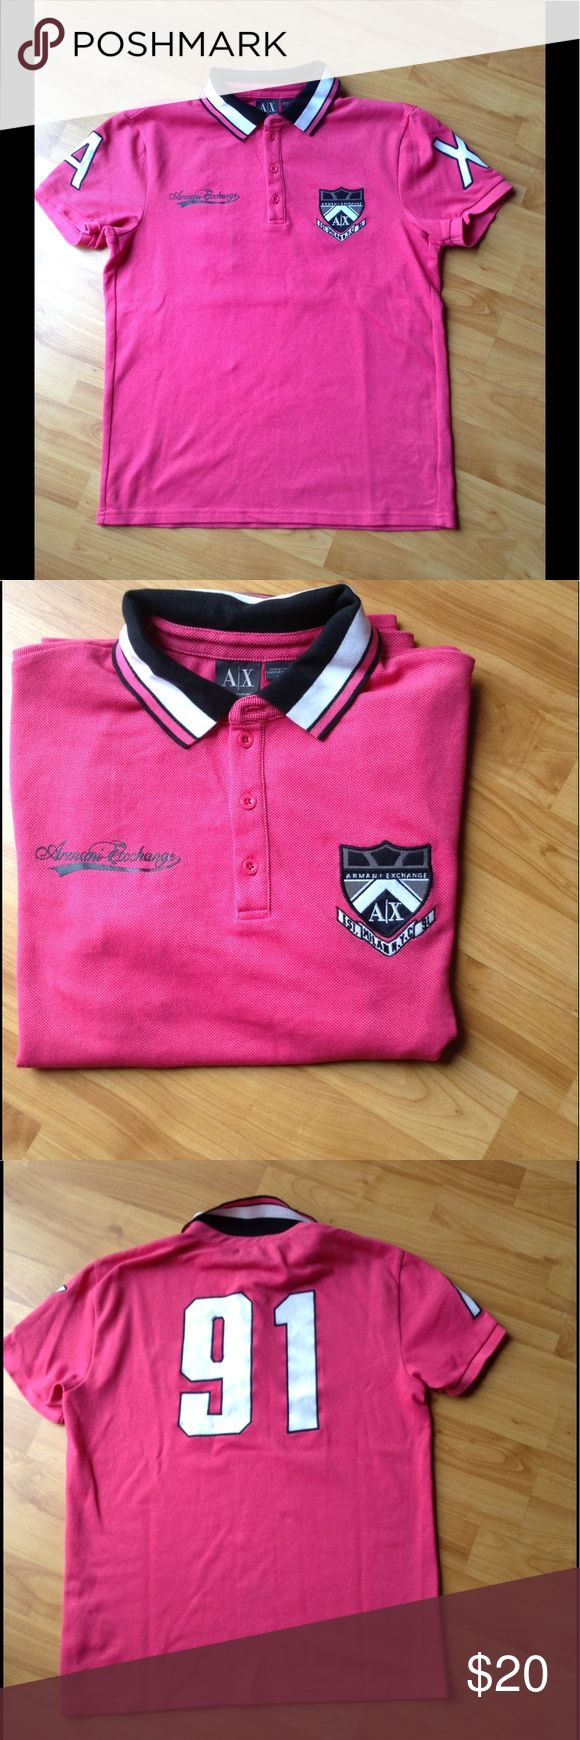 Men's Designer Polo Shirt Like New; Short Sleeve Polo Shirt with Patches on Sleeves and Number Stitched on the Back; Color is as shown in pics 1,2,3,4 Armani Exchange Shirts Polos